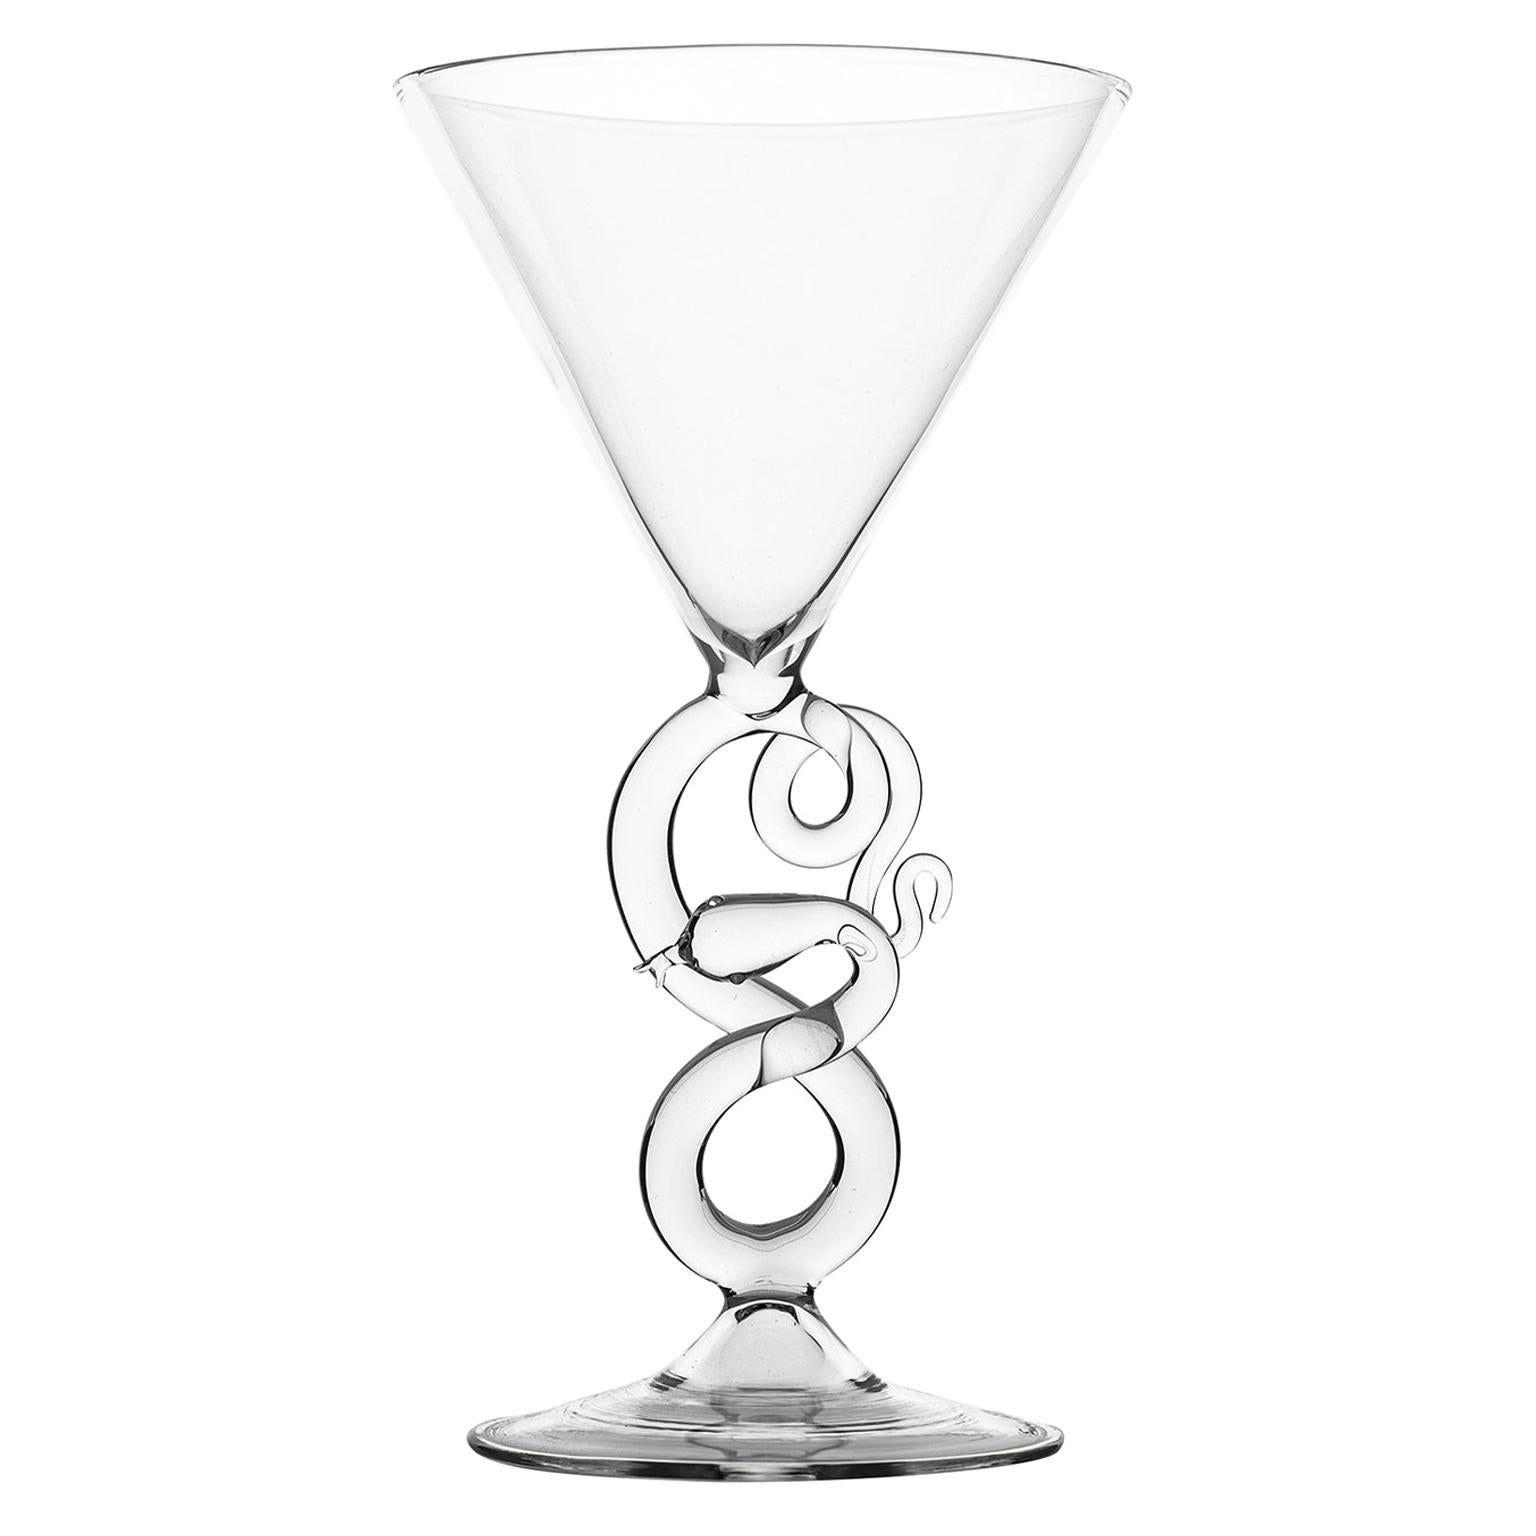 Hand Blown Martini Glass from Serpentine Collection by Simone Crestani